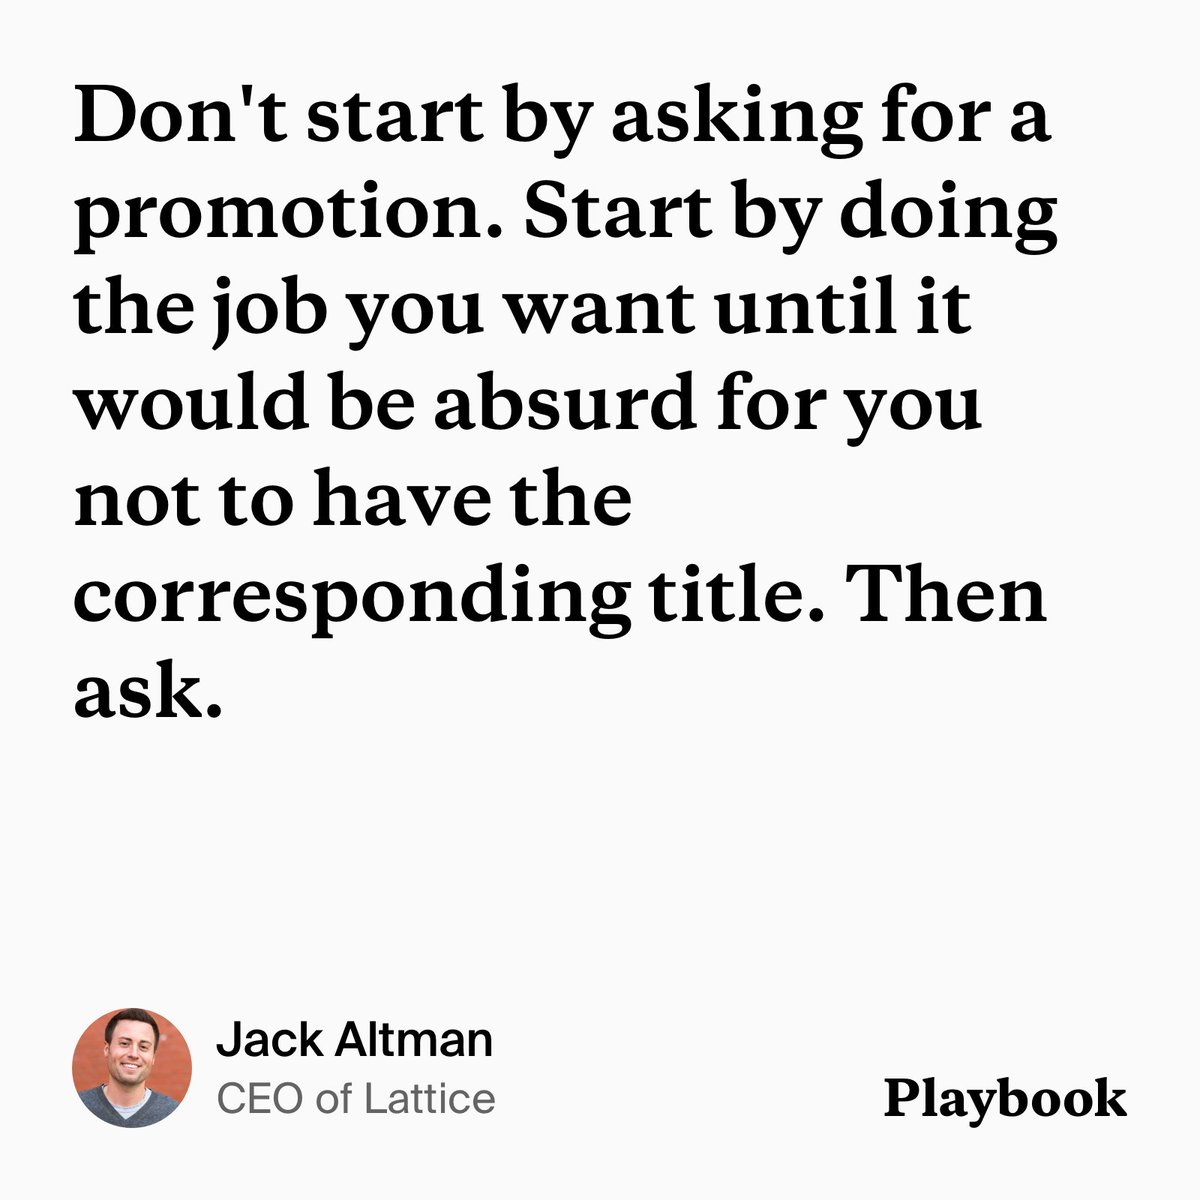 playbook on twitter thinking about asking for a promotion some actionable advice from jaltma httpstcozfie0tcpuf